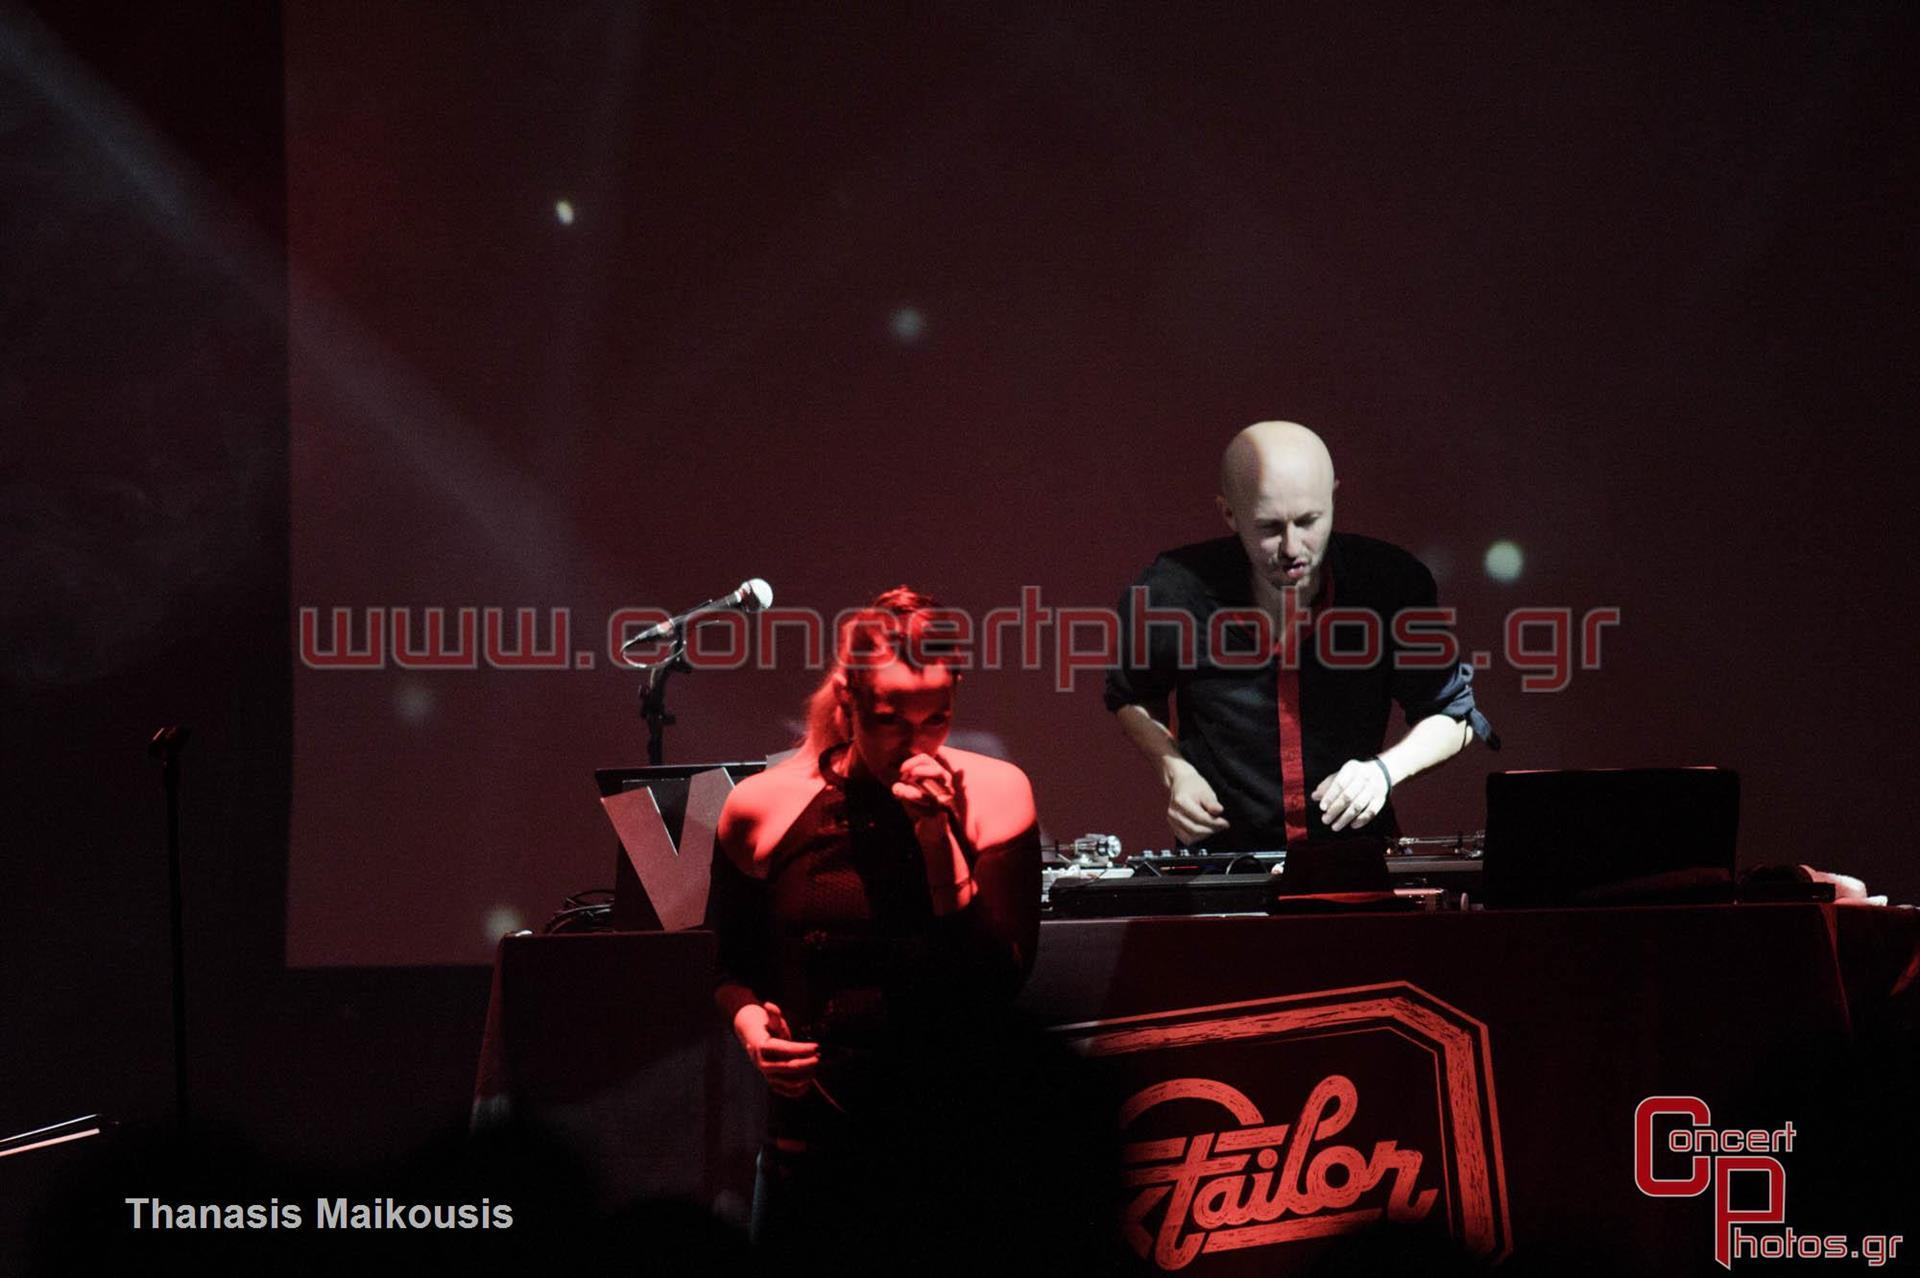 Wax Tailor - photographer: Thanasis Maikousis - ConcertPhotos-7912